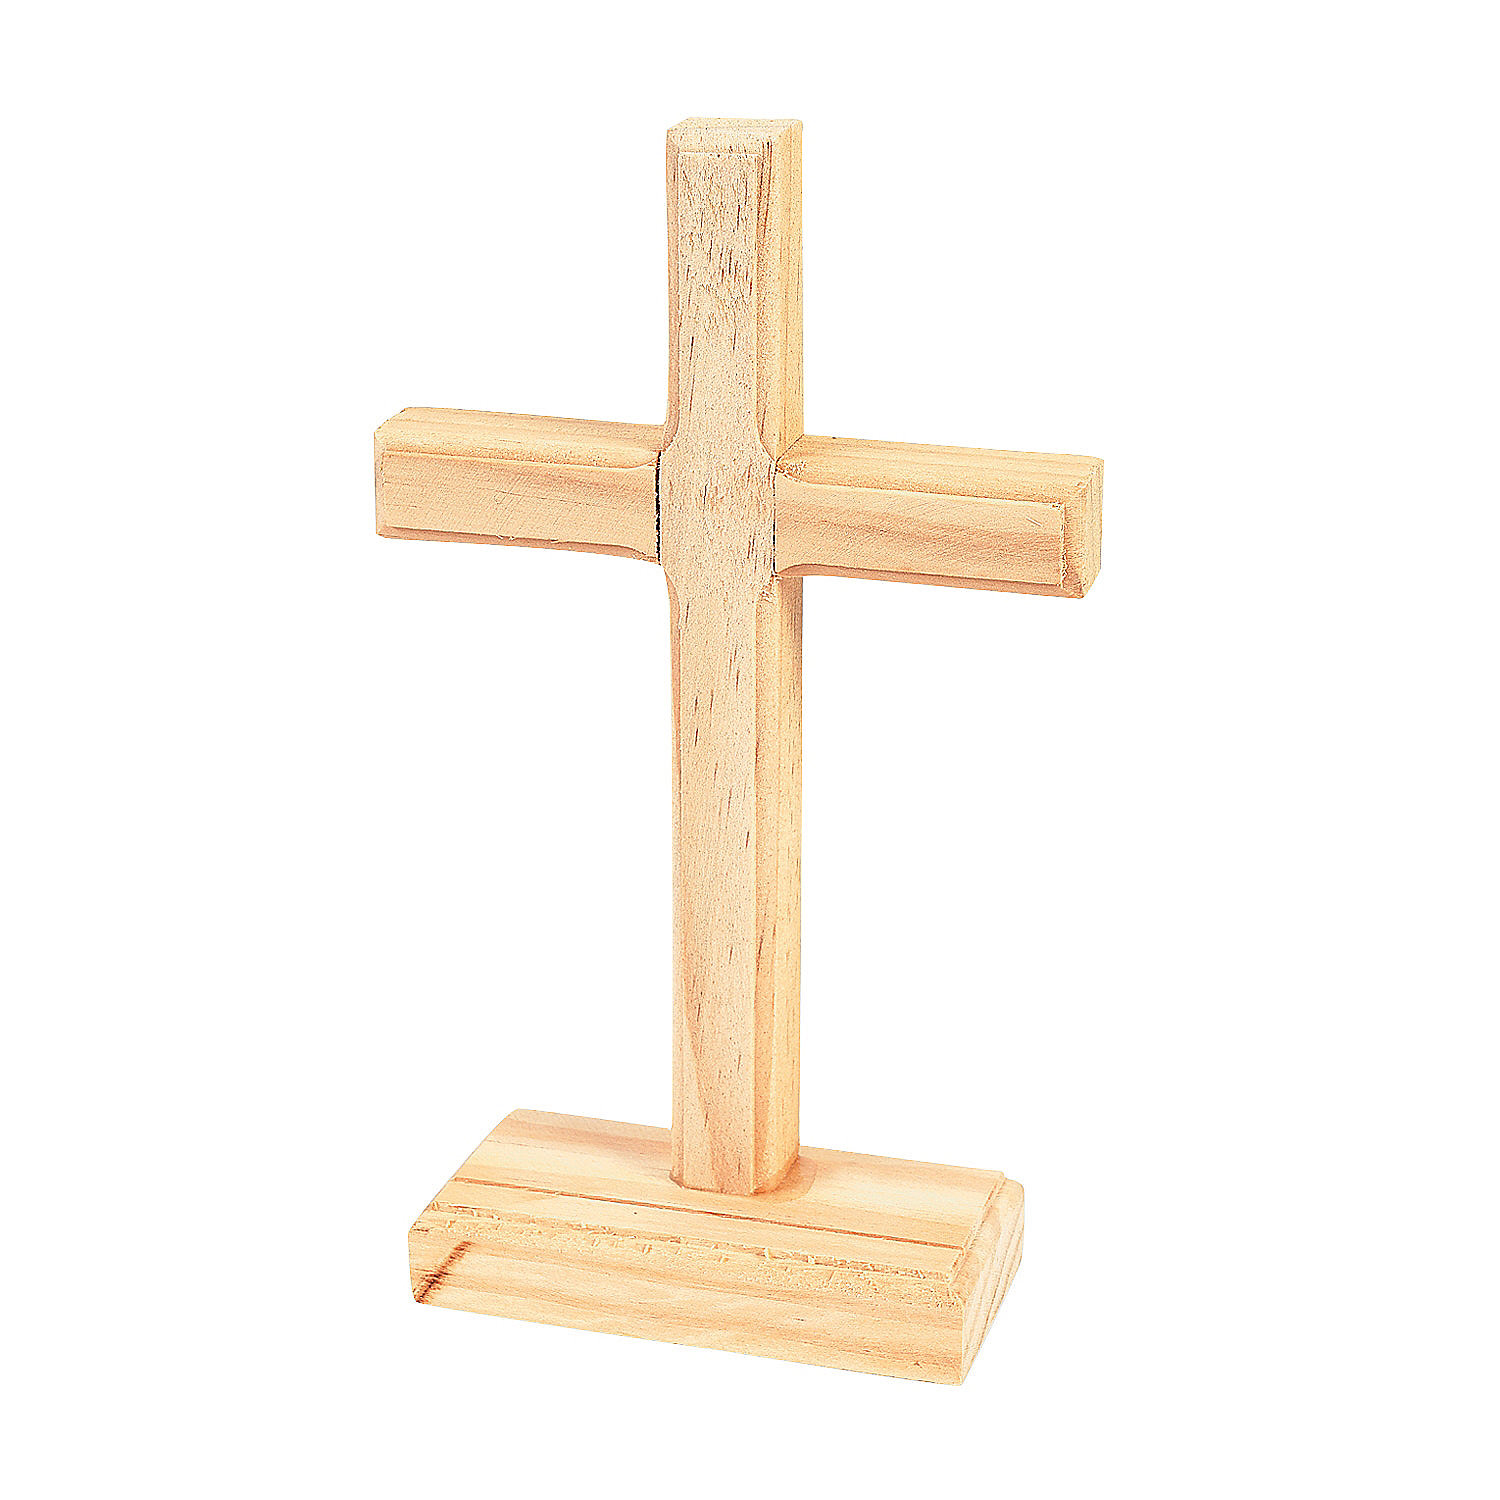 Oriental trading small wood crosses rachael edwards for Cheap wooden crosses for crafts